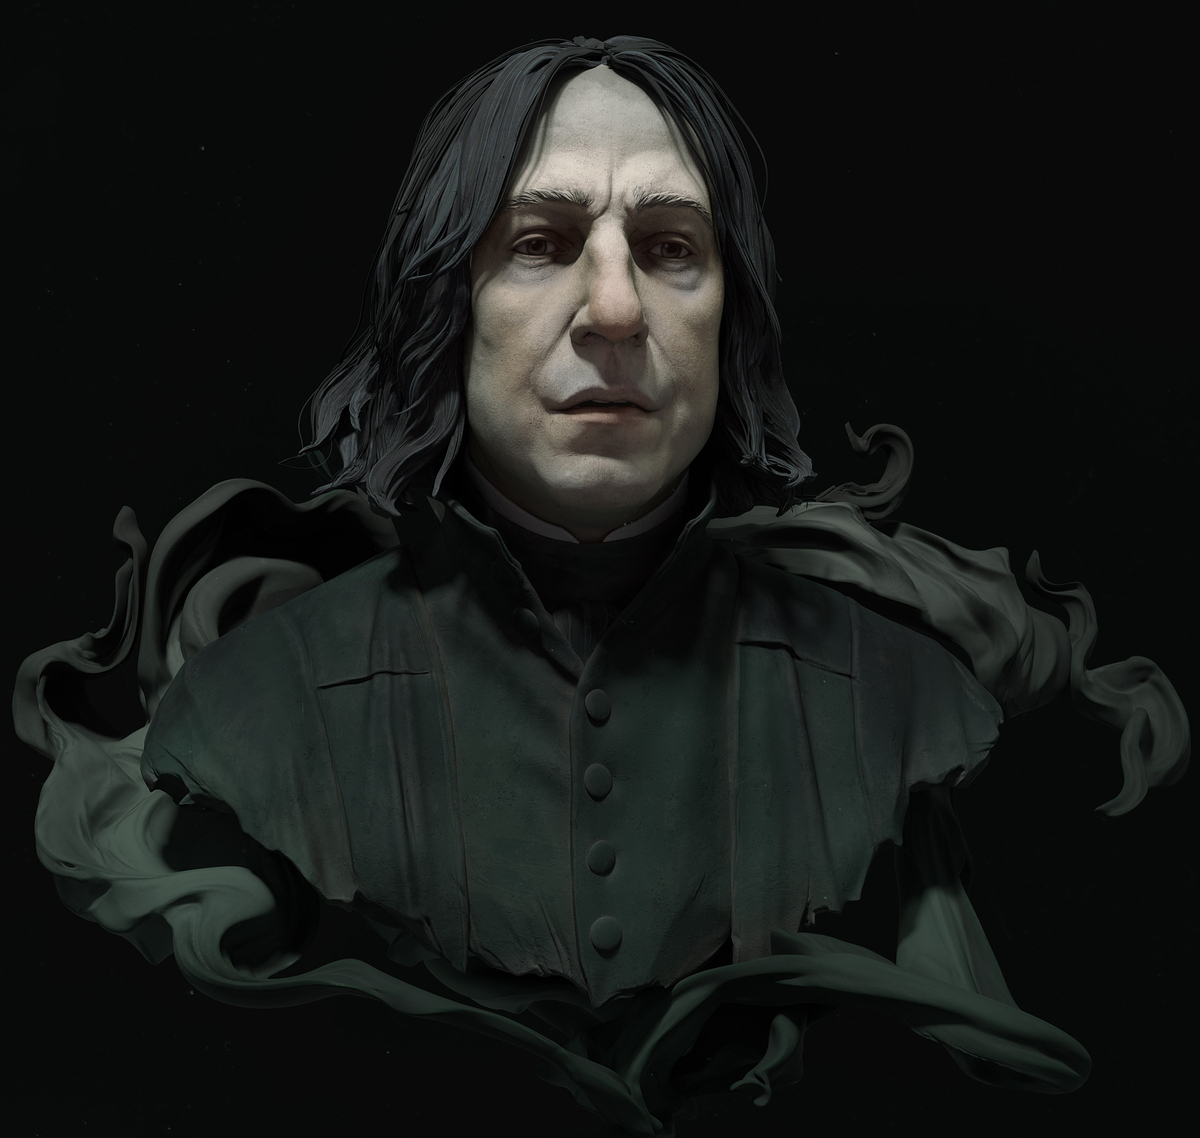 snape_frame1_compose_small